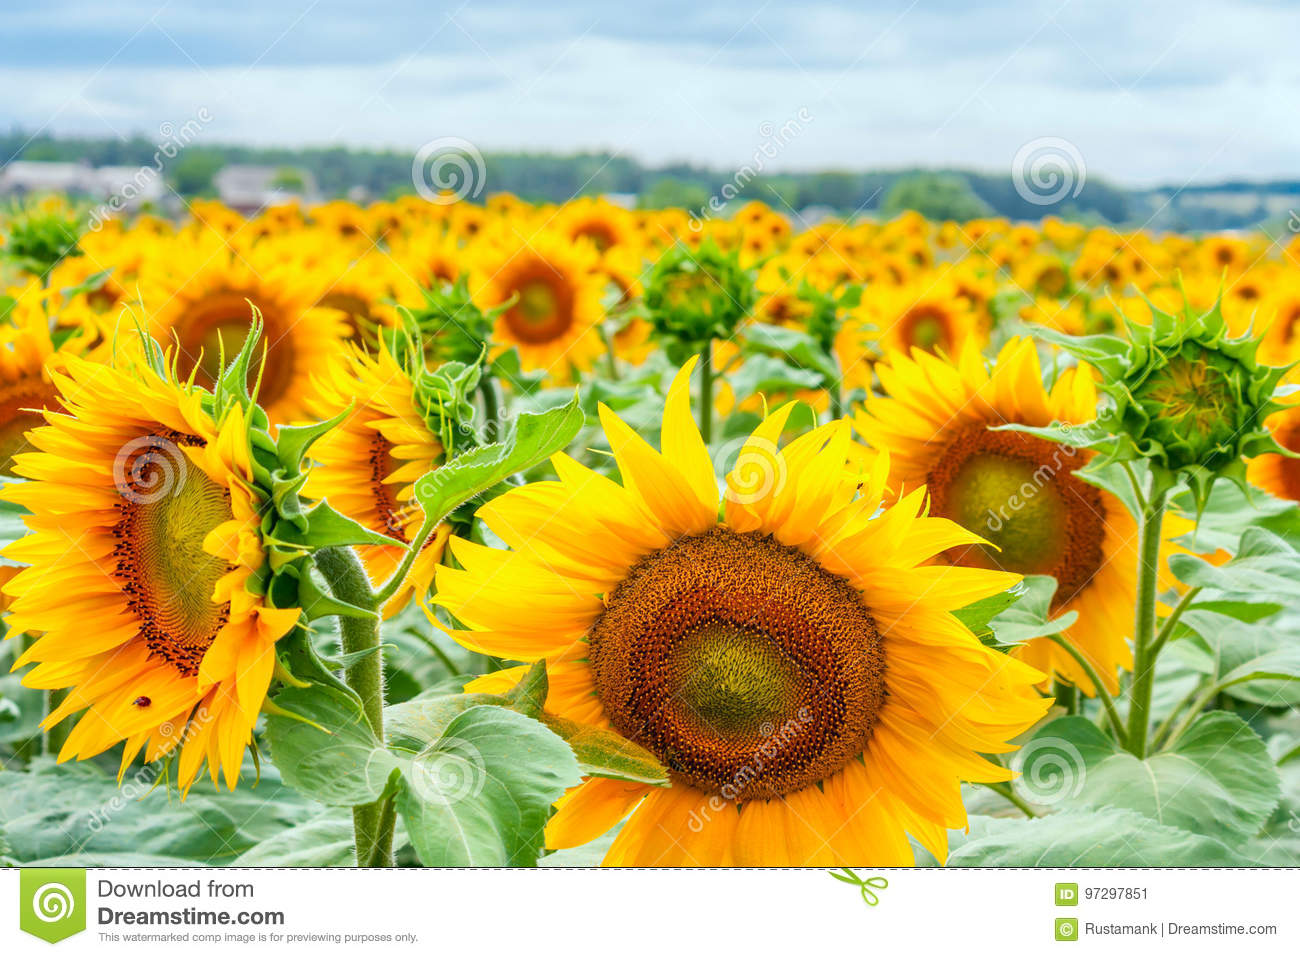 Blooming sunflowers and pollinating them honey bees